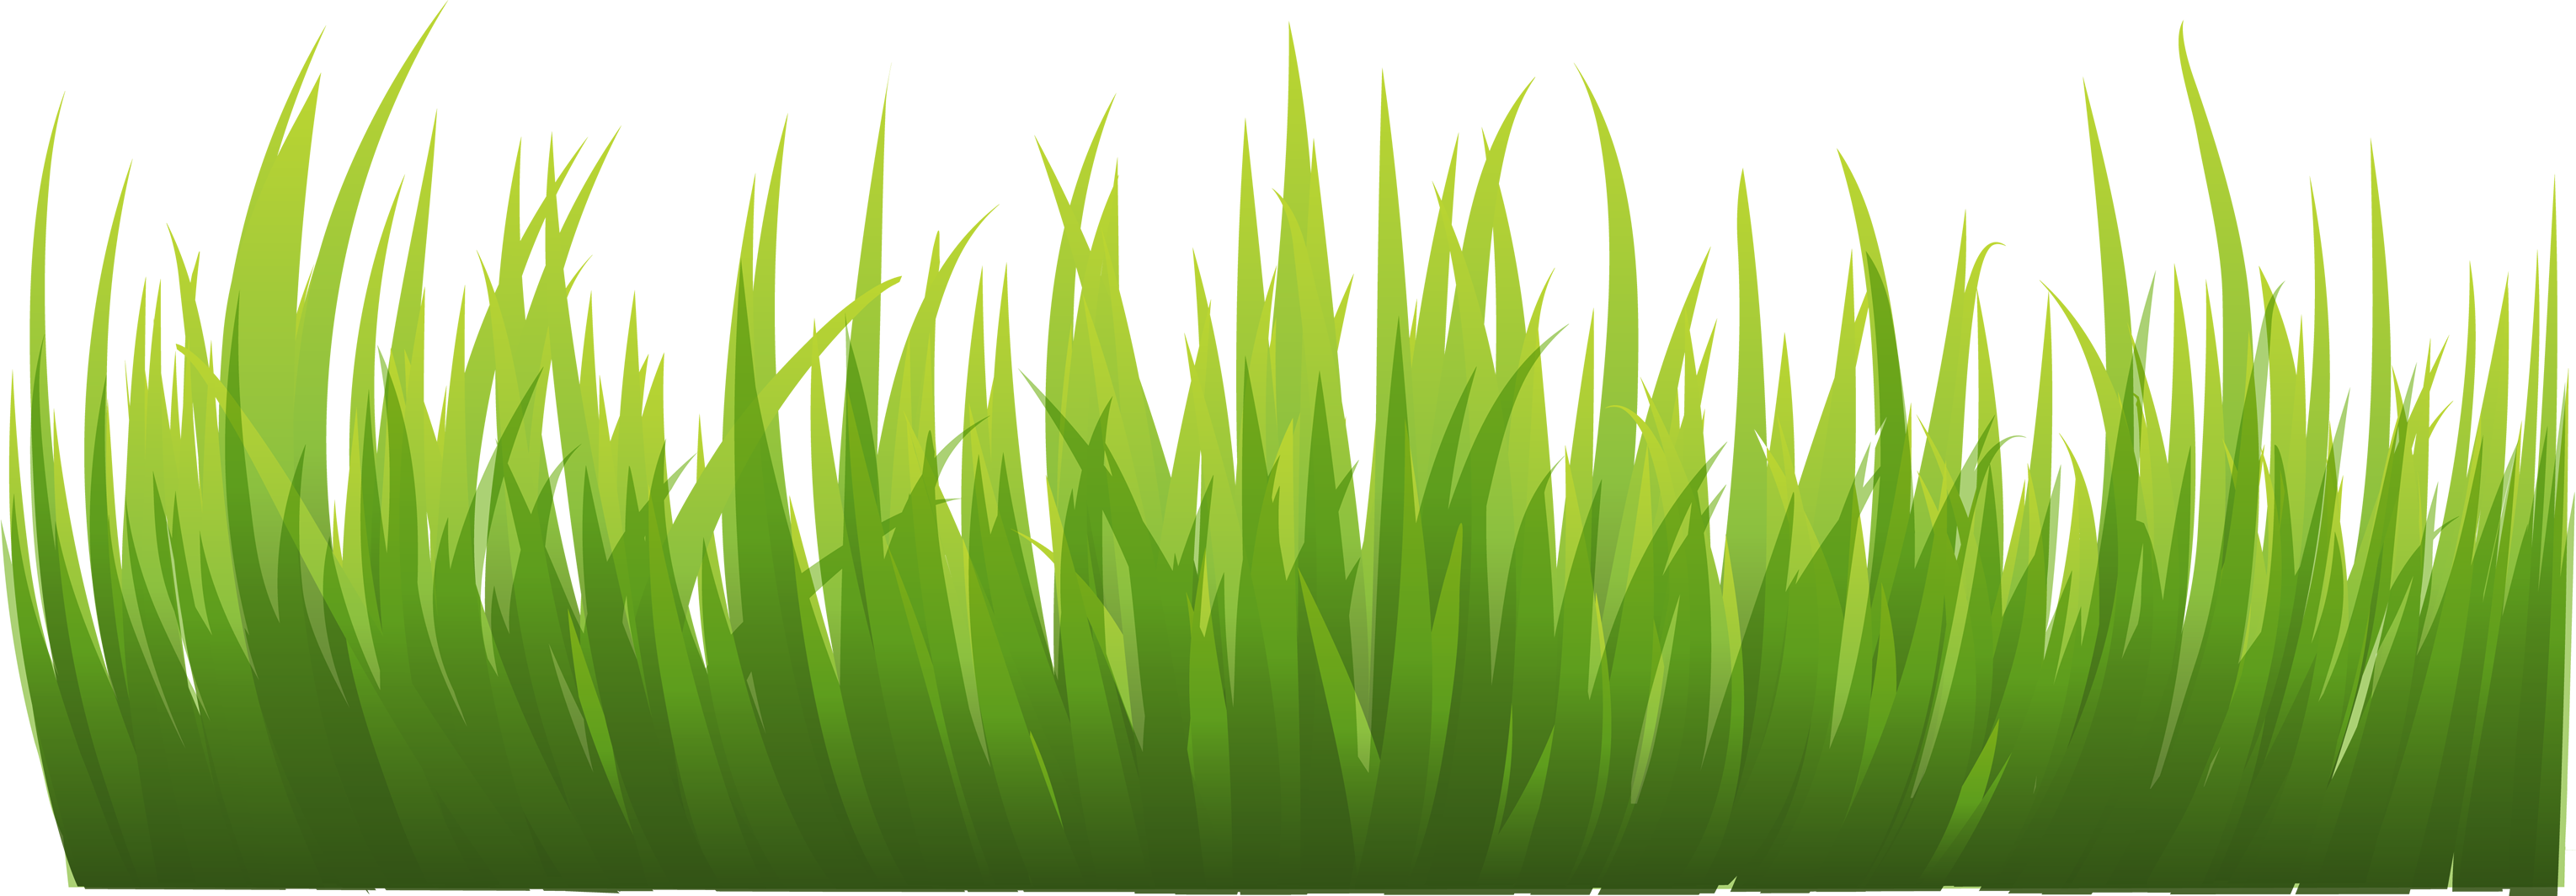 png transparent stock Lawn care clipart realistic grass. Png images pictures image.